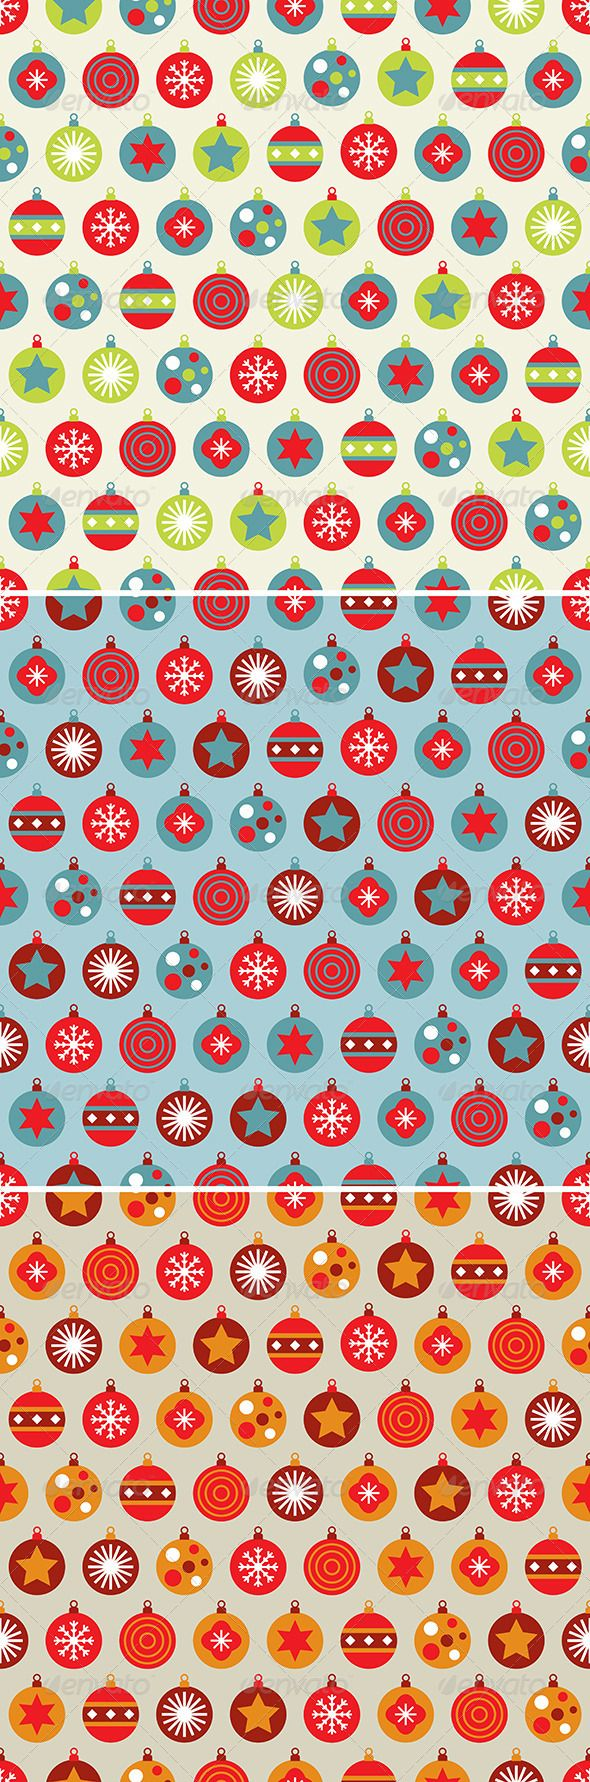 Seamless fir tree scandinavian pattern textile background wrapping - Christmas Bauble Pattern